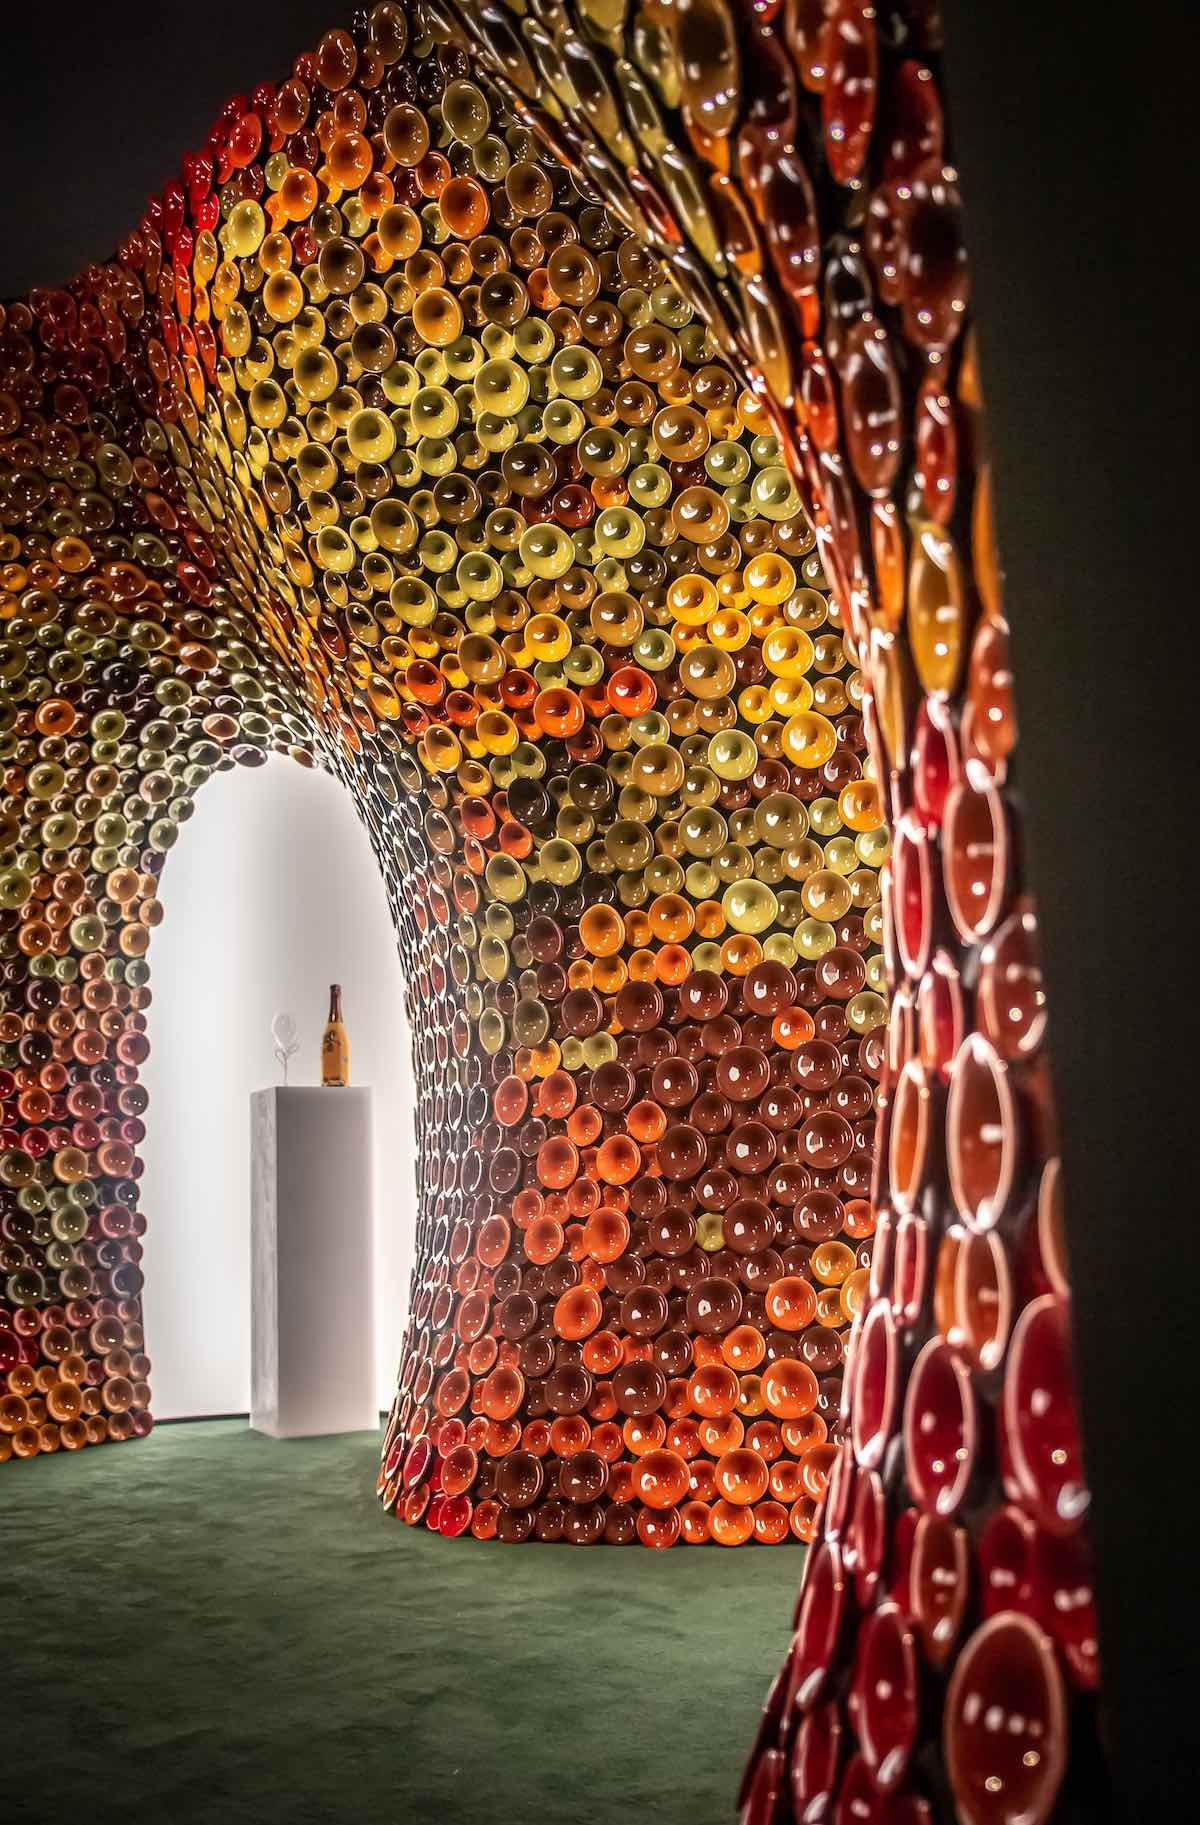 Perrier Jouët Booth by Andrea Mancuso @ DesignMiami/ 2019 - Courtesy of Maison Perrier Jouët.